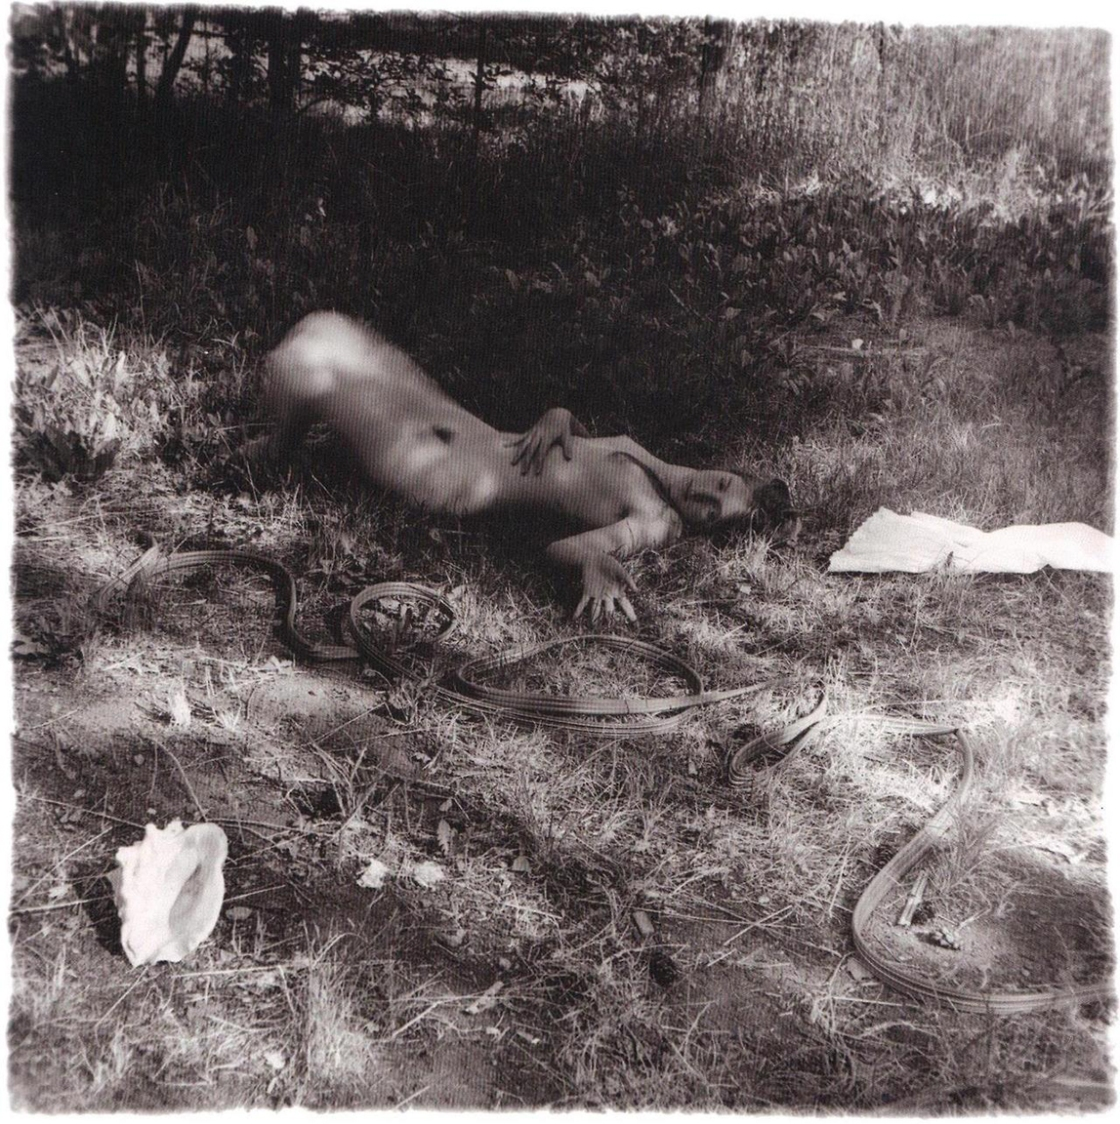 72 - 1976 - Untitled, Boulder, Colorado francesca-woodman_self